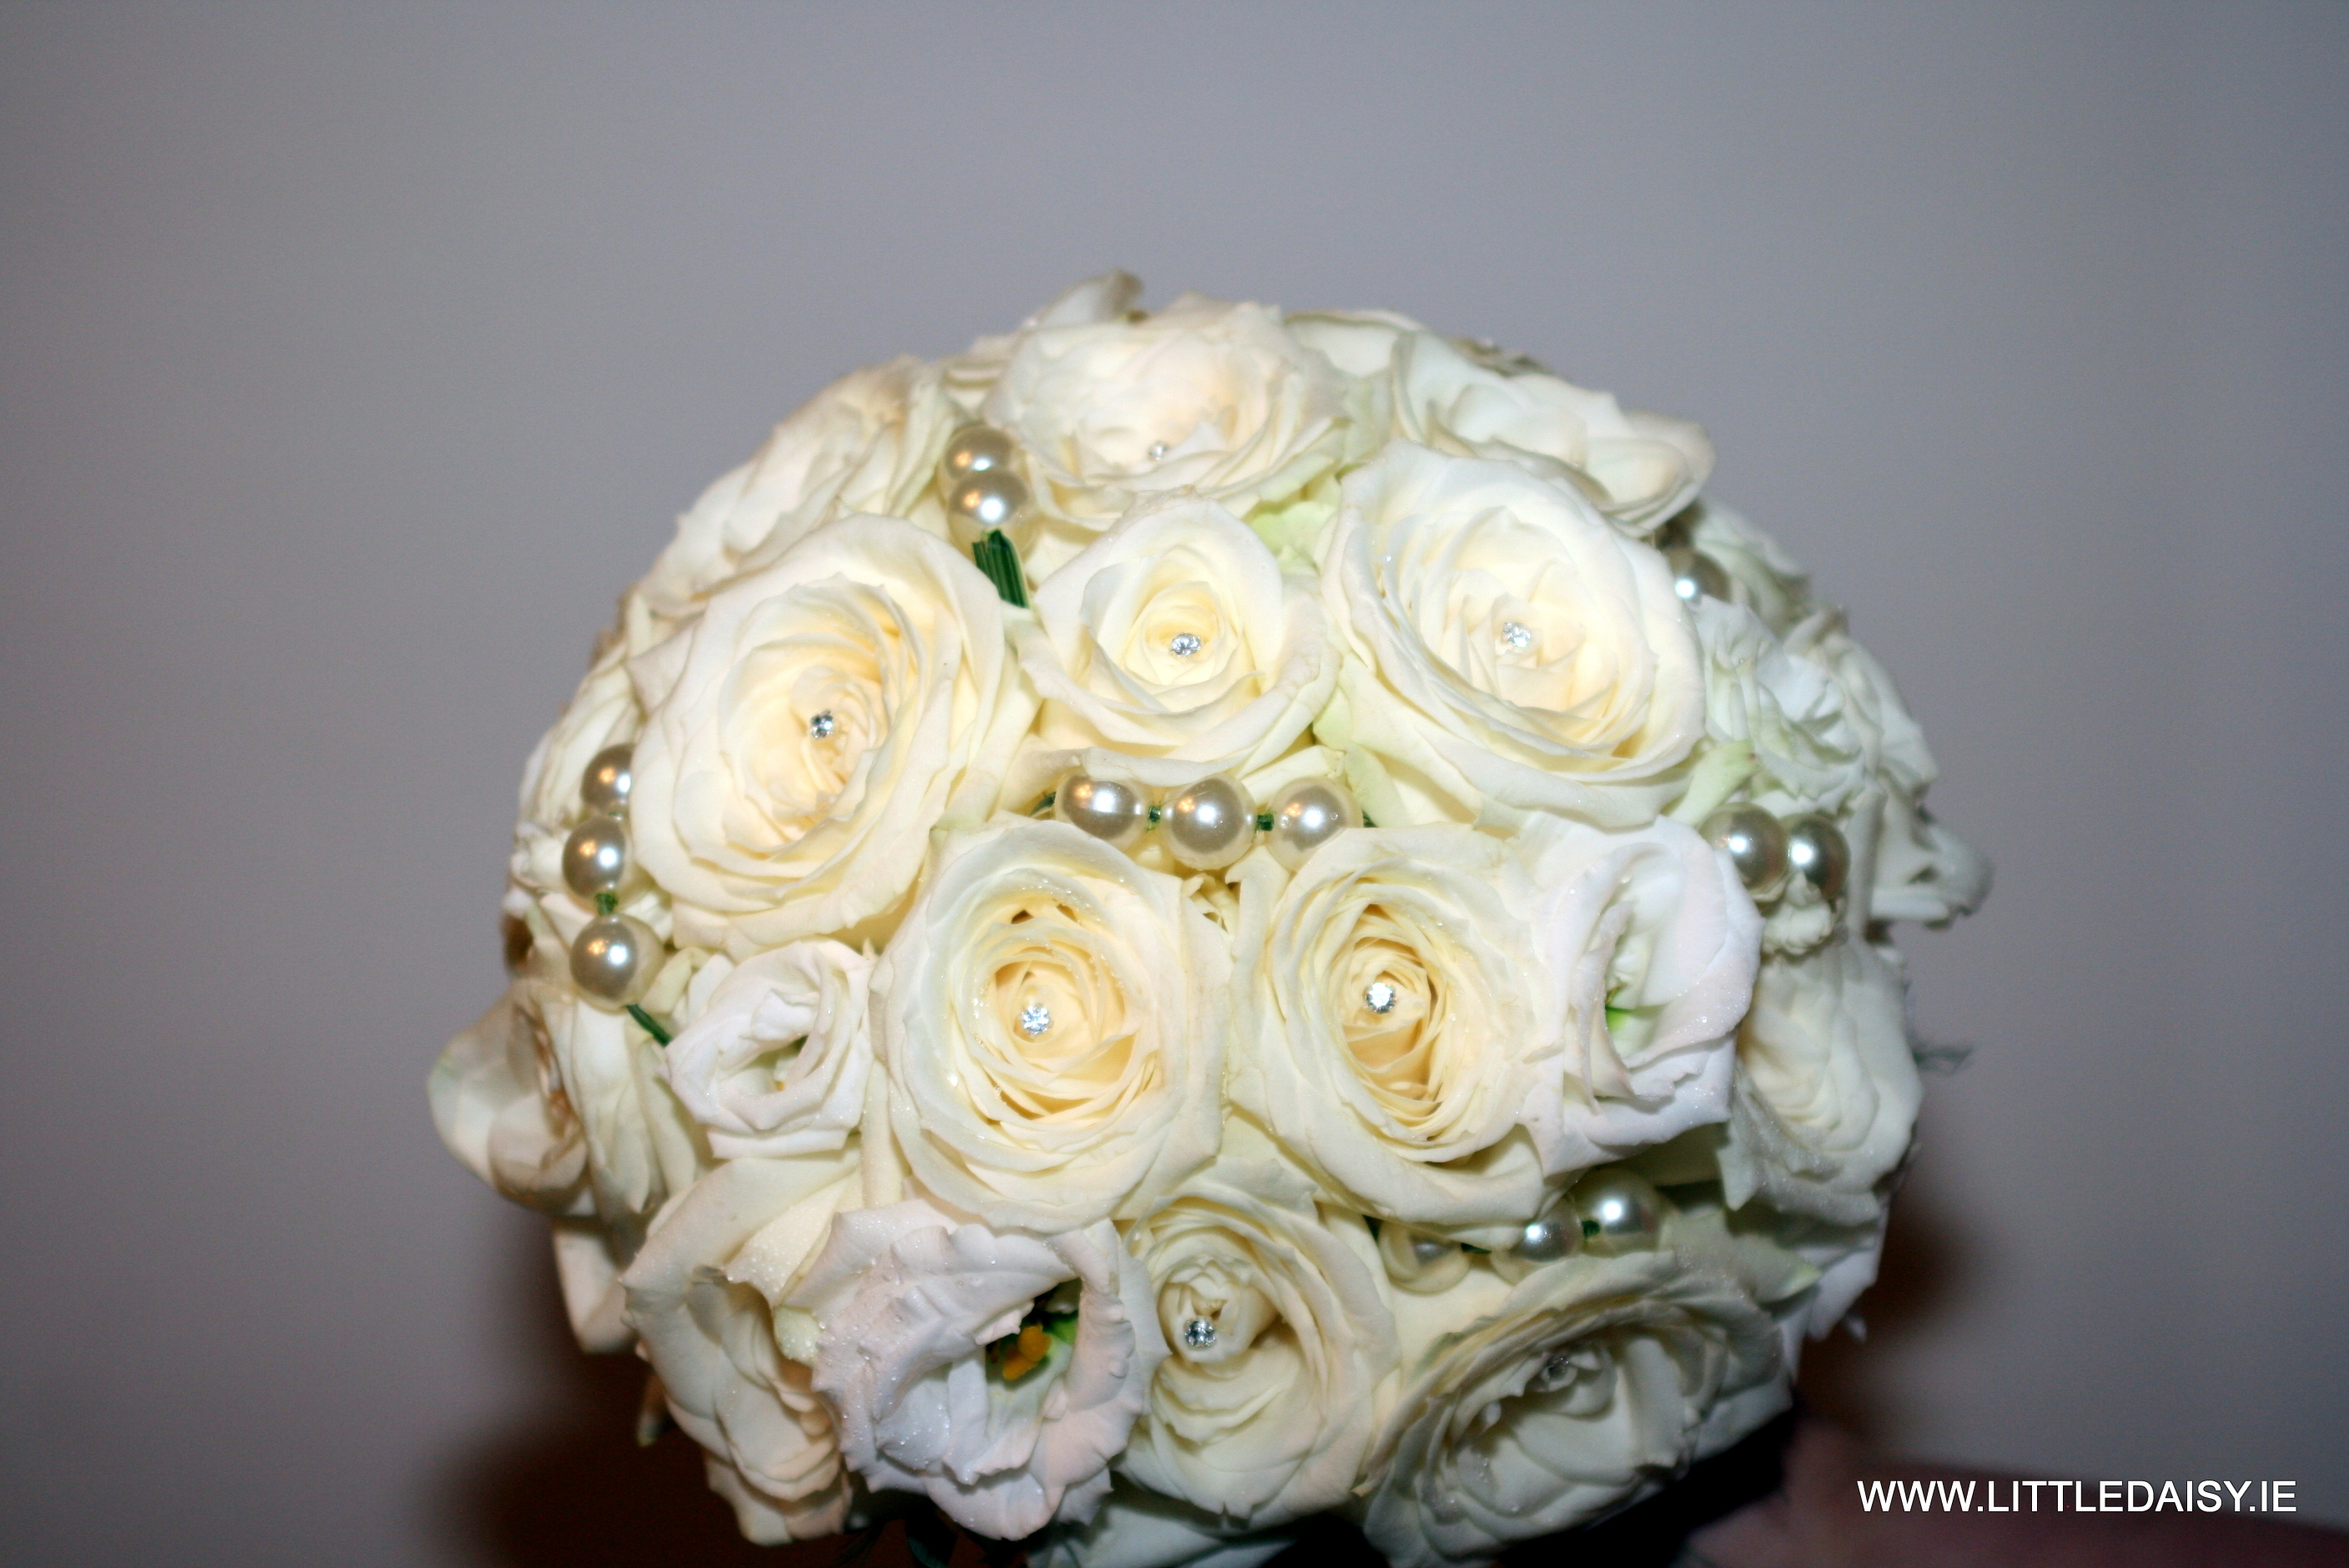 White roses and pearl beads